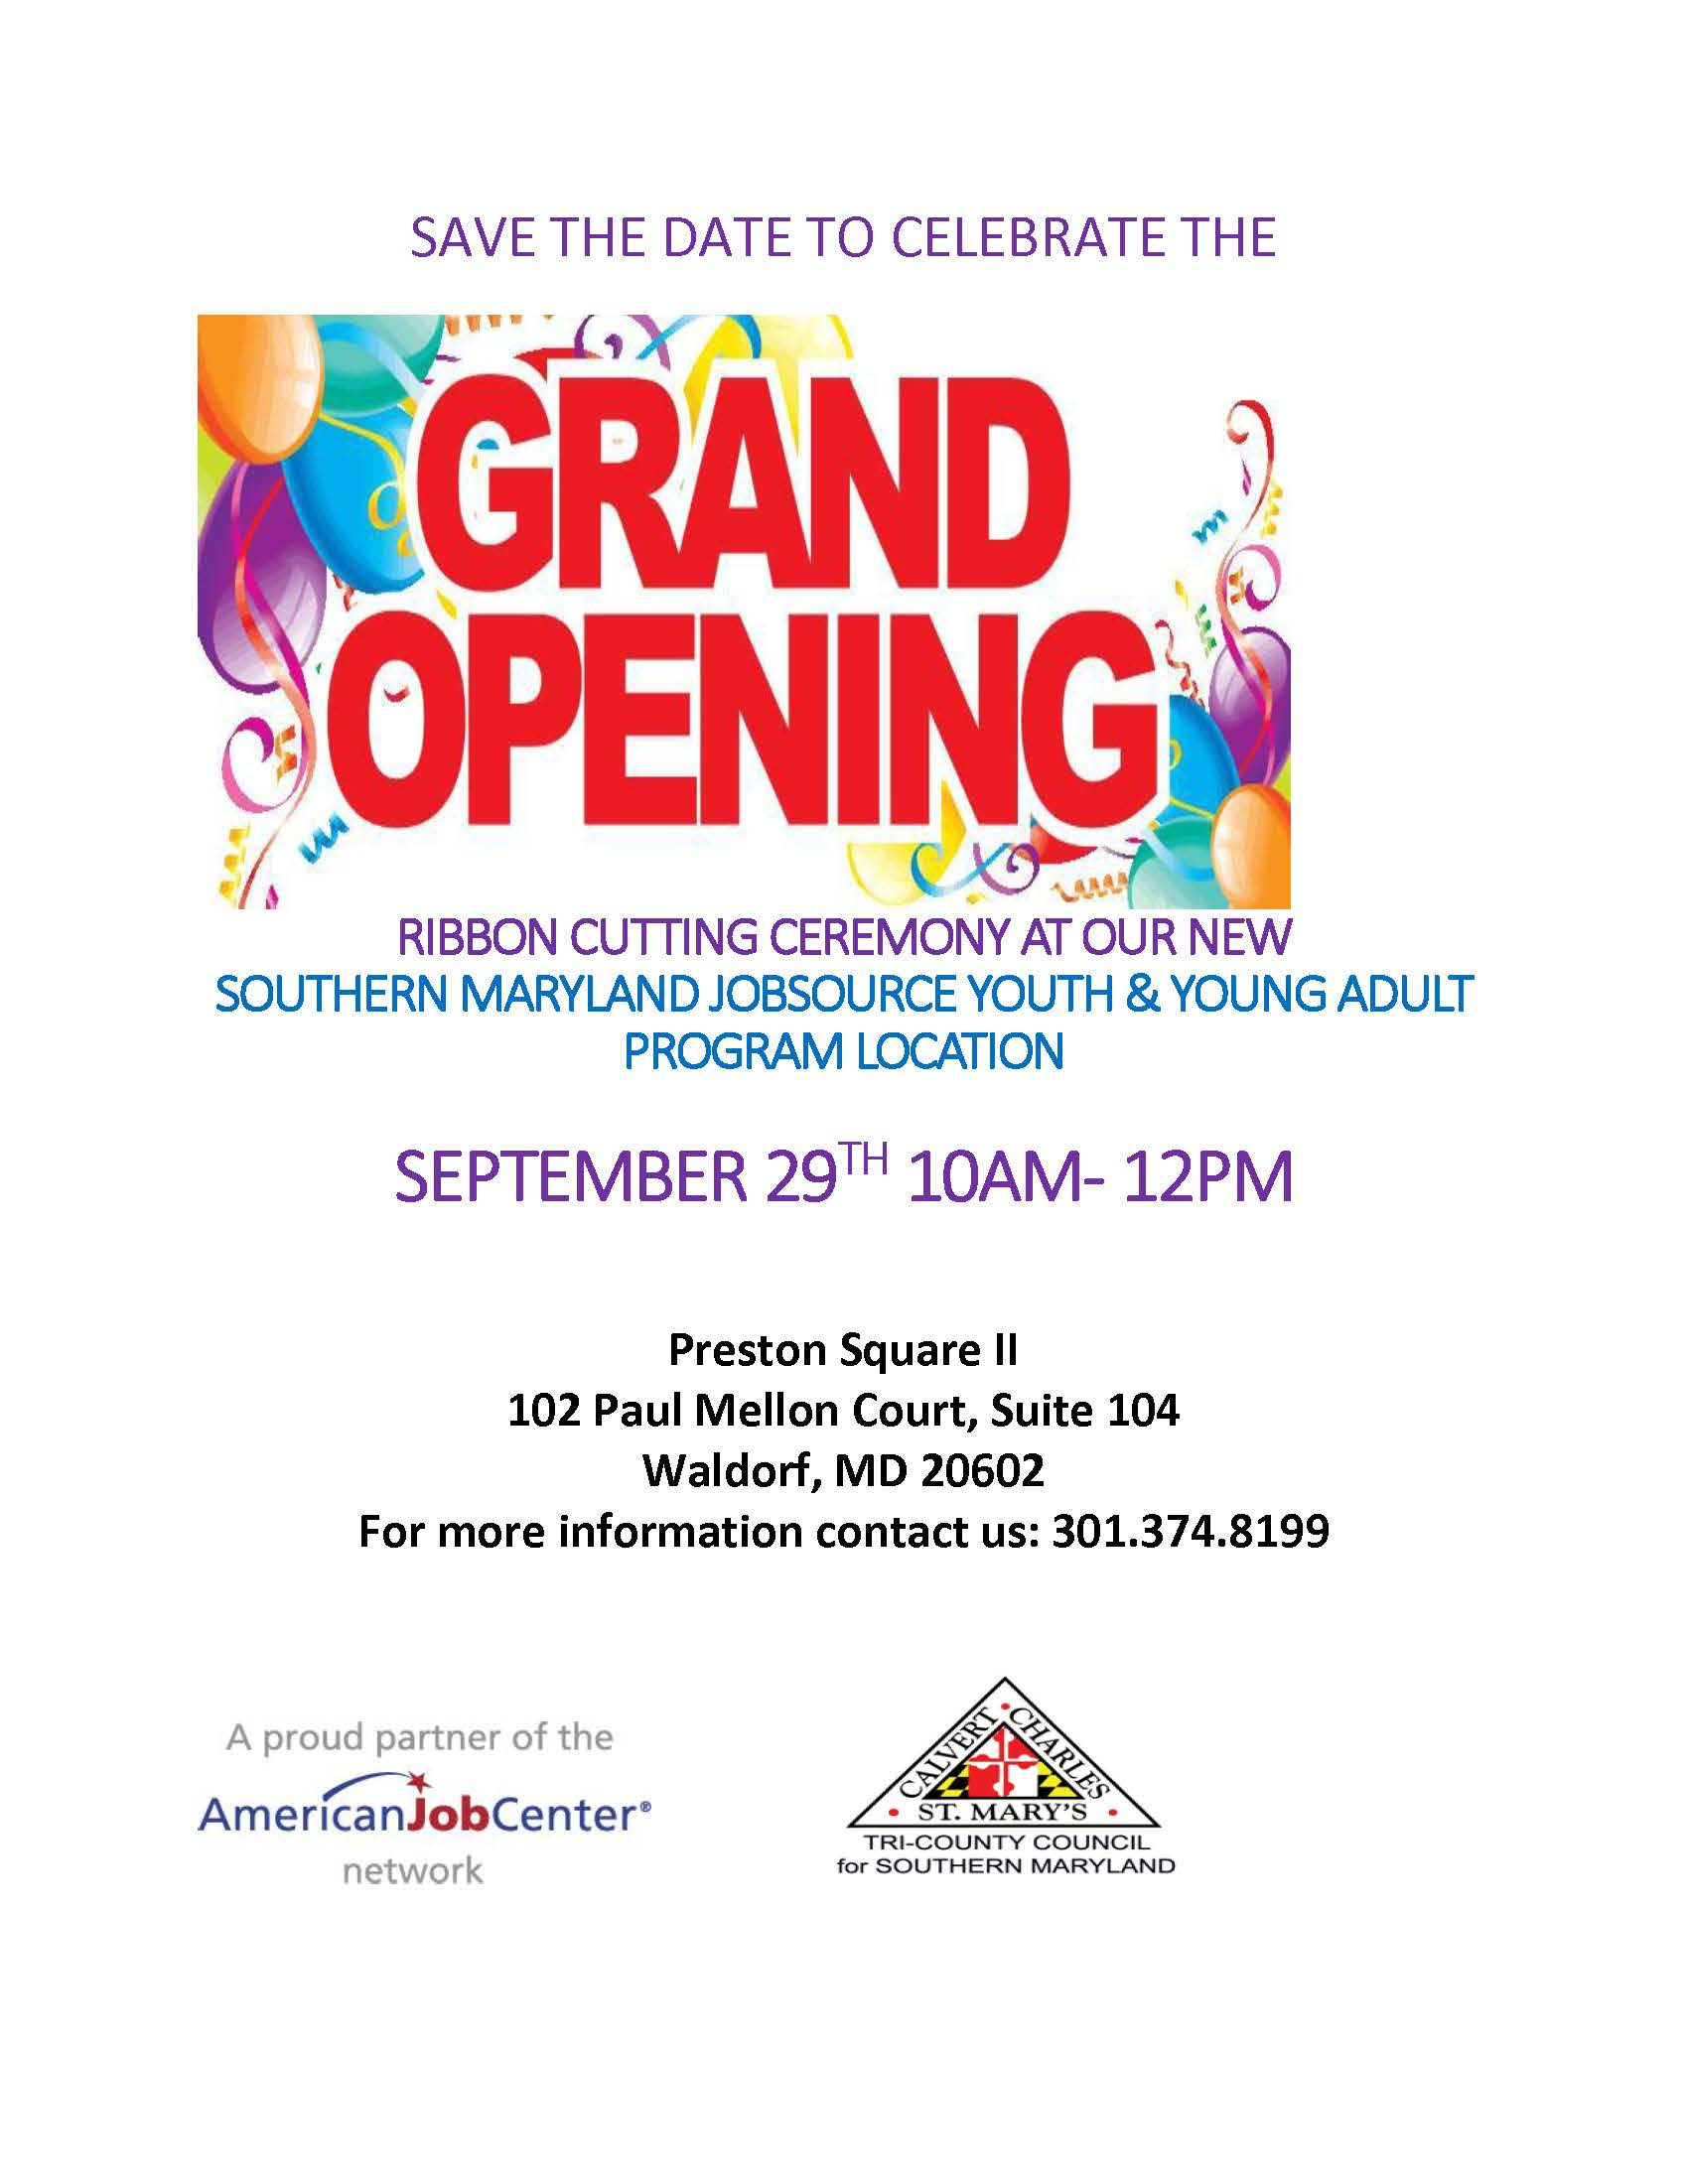 tri county council for southern maryland grand opening celebration